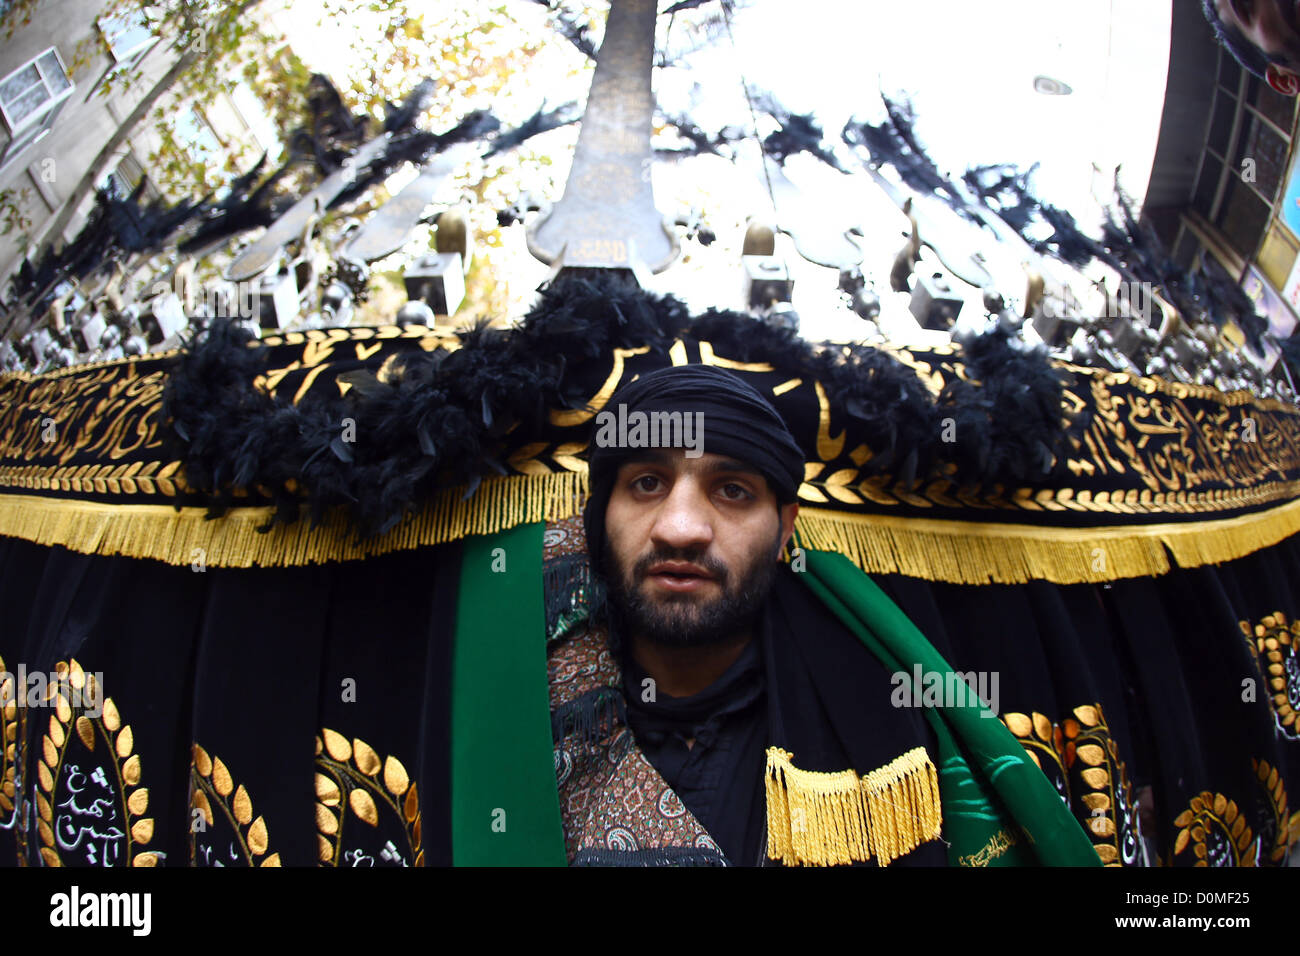 TEHRAN, IRAN - NOVEMBER 26: An Iranian man carries an Alam while celebrating the day of Ashura on November 26, 2012 - Stock Image